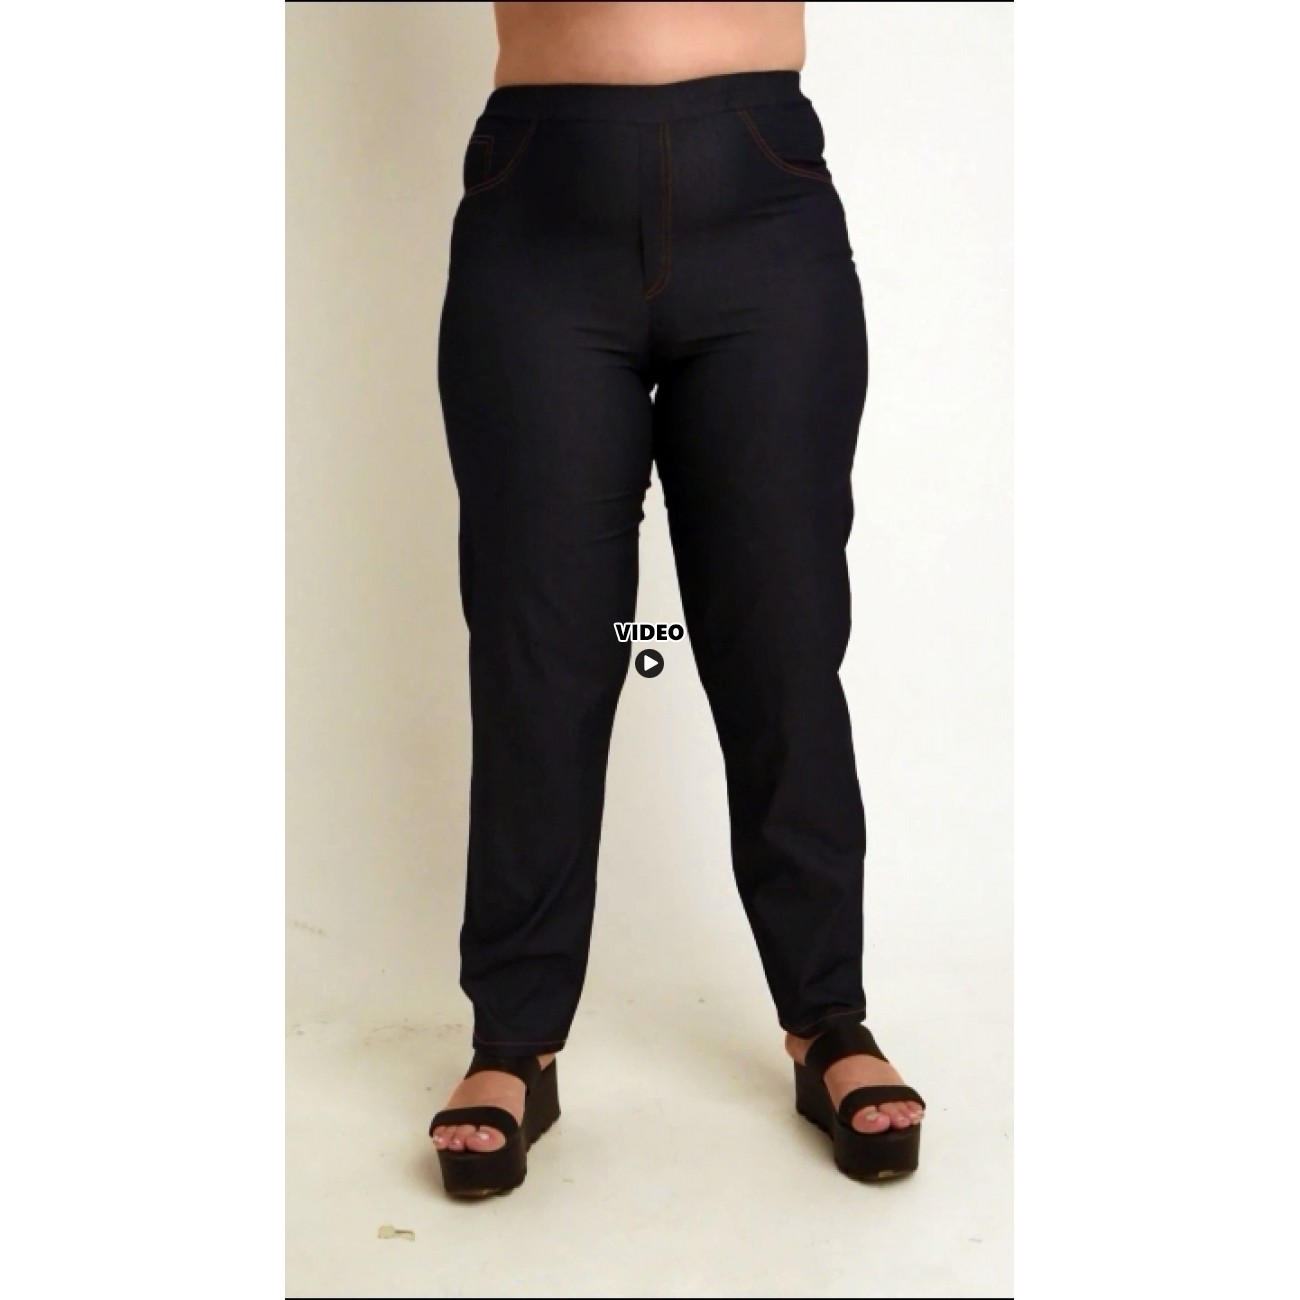 A20-659 Fitted trousers with 5 pockets - Dark blue